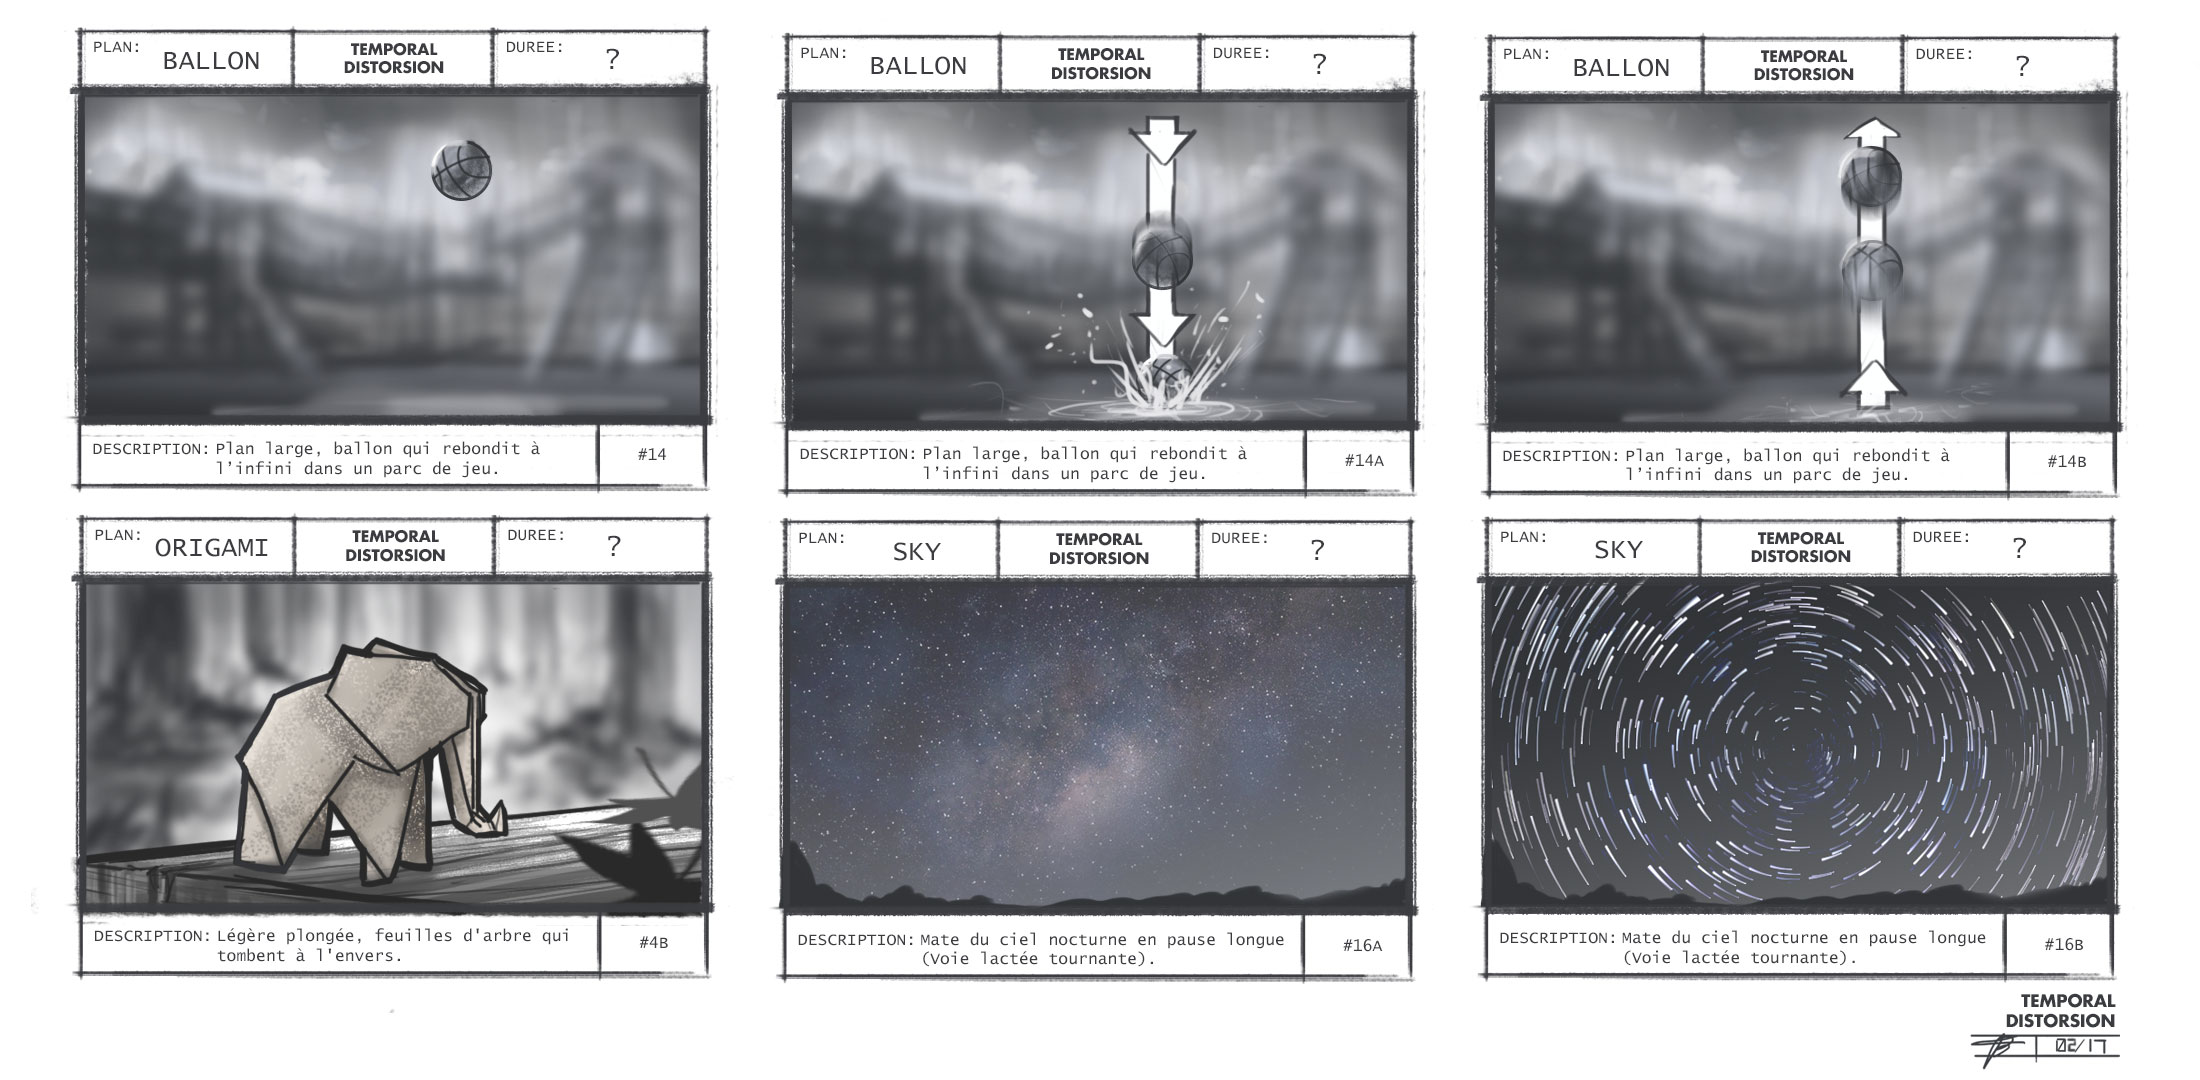 STORYBOARD (Temporal Distortion)